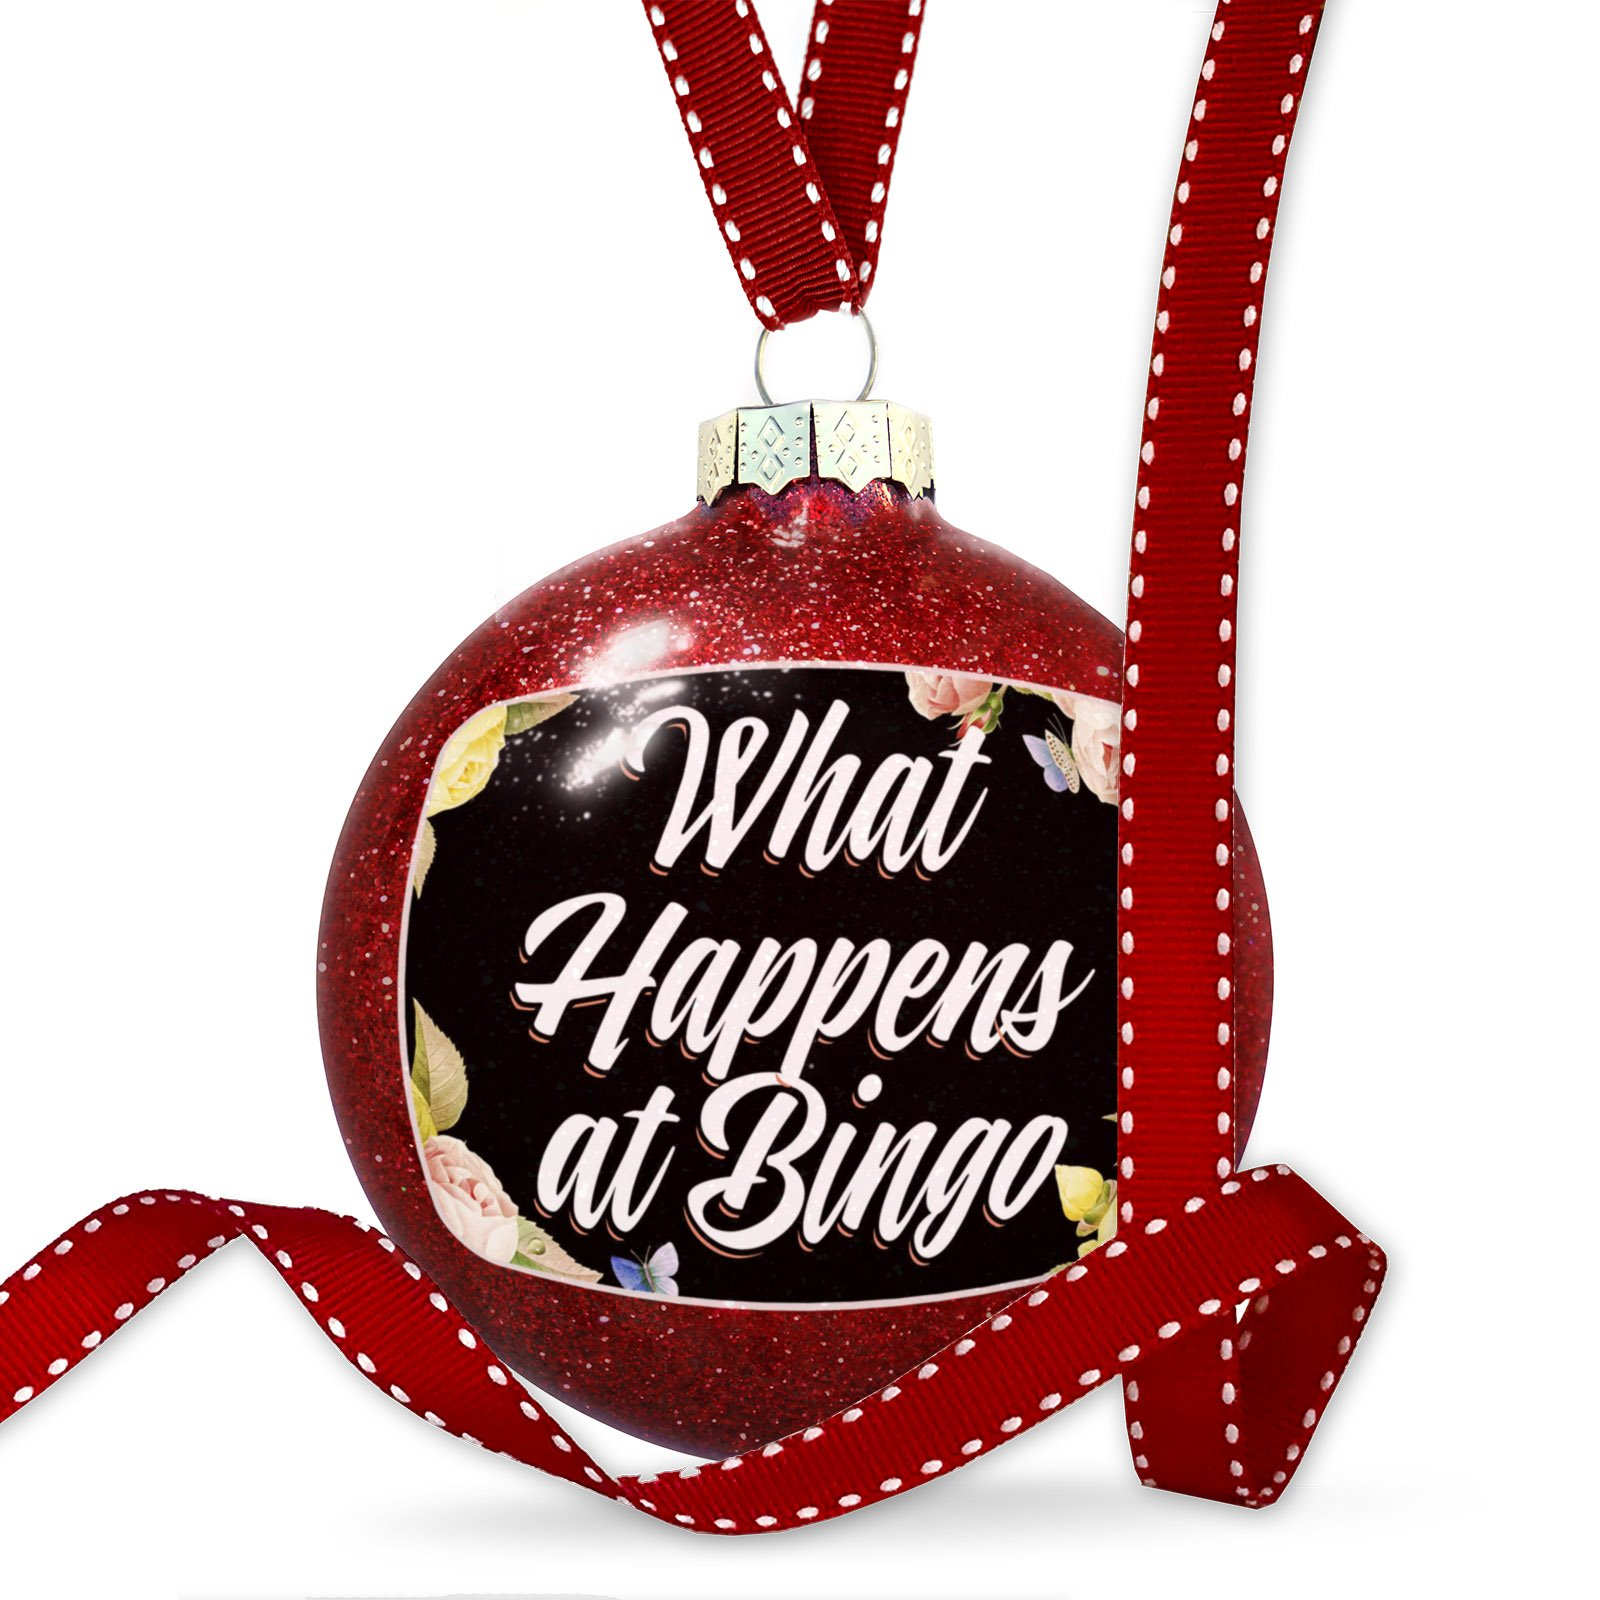 Christmas Decoration Floral Border What Happens at Bingo Ornament by NEONBLOND